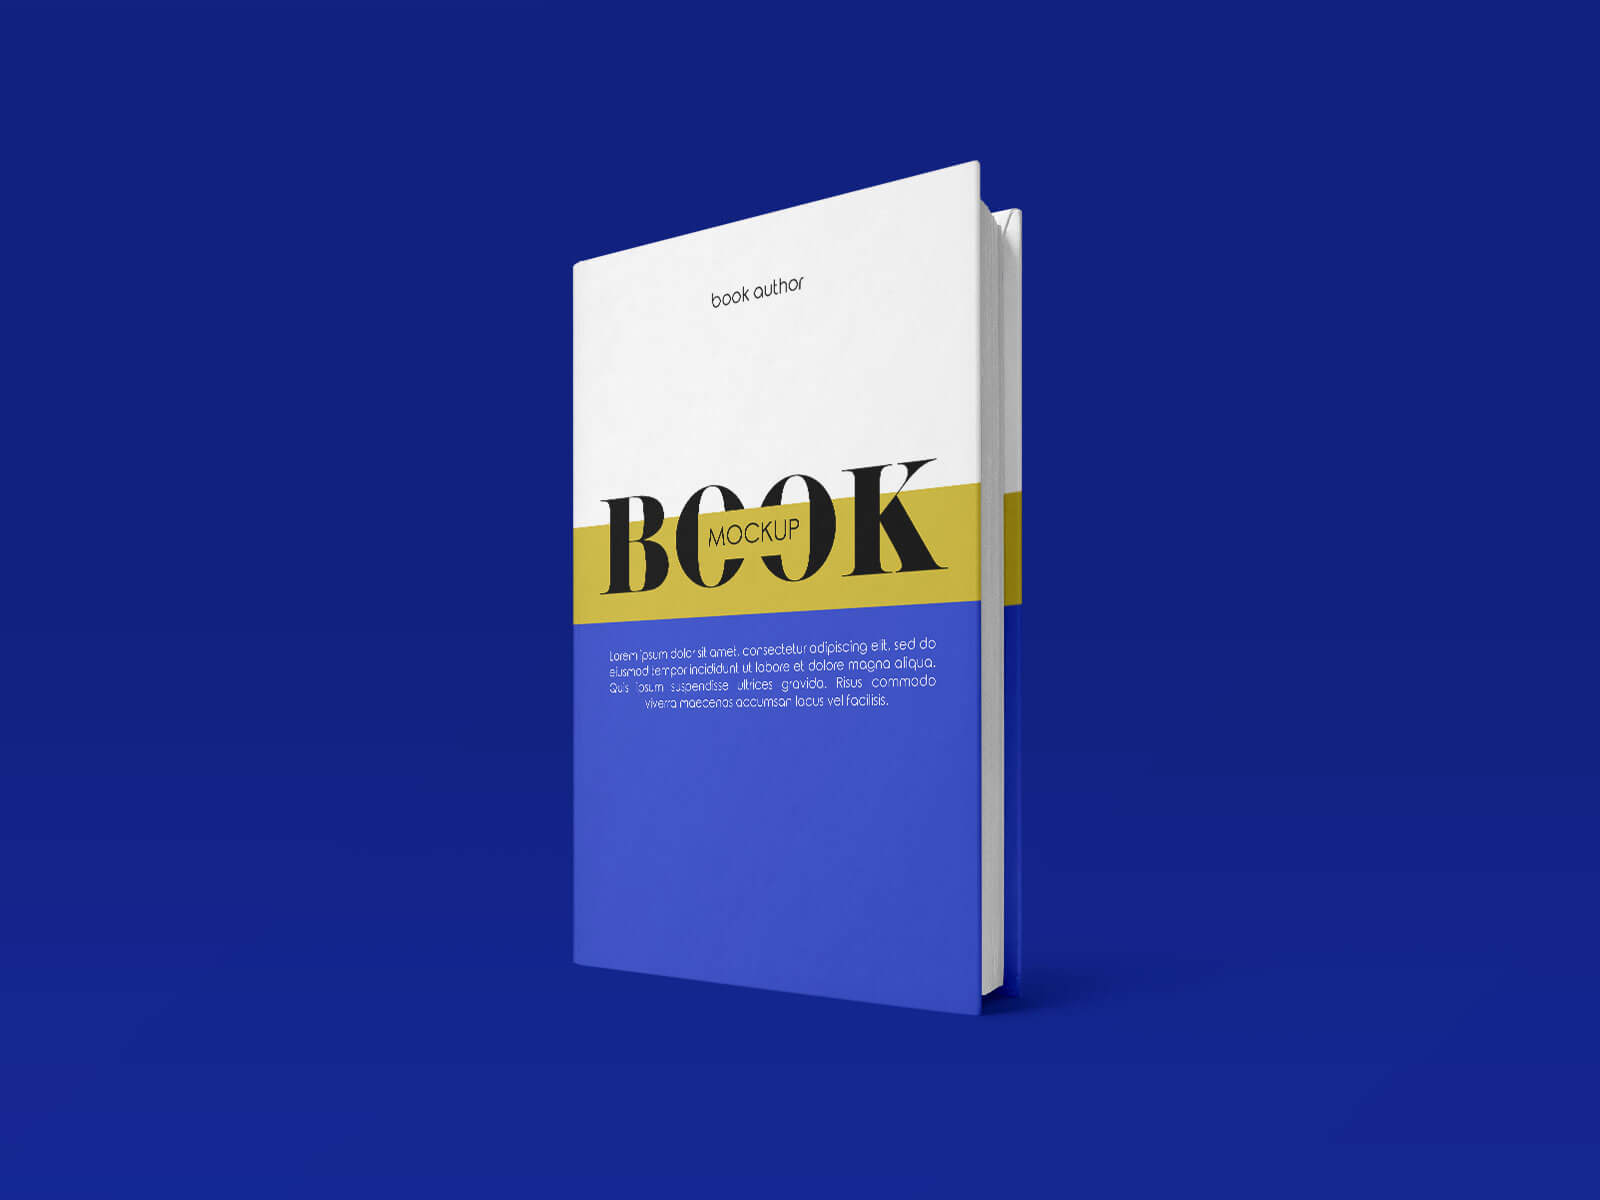 Free-Hardcover-Standing-Book-Mockup-PSD-Set-2